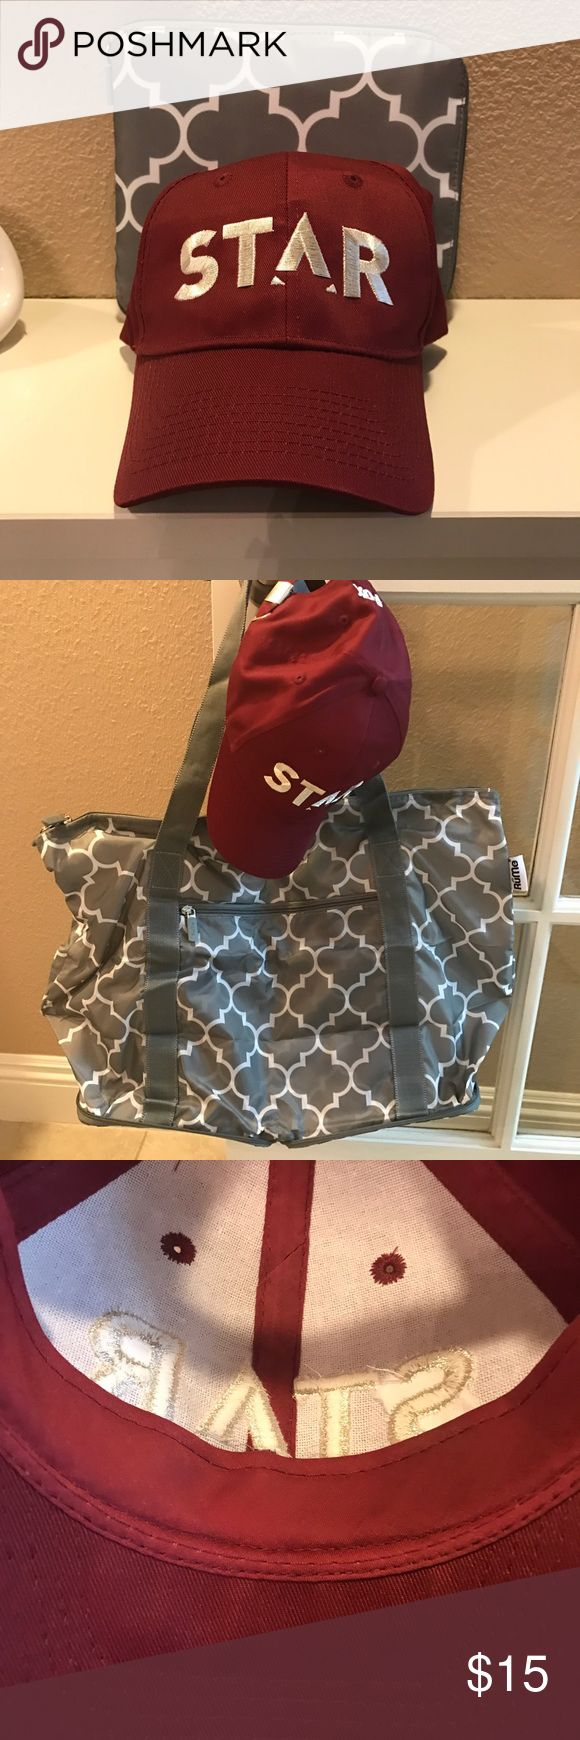 Star Baseball Cap and Rume Foldable Zippered Bag Fox TV show Star Hat and foldable bag. Brand new. Never worn or used. Rume Bags Shoulder Bags